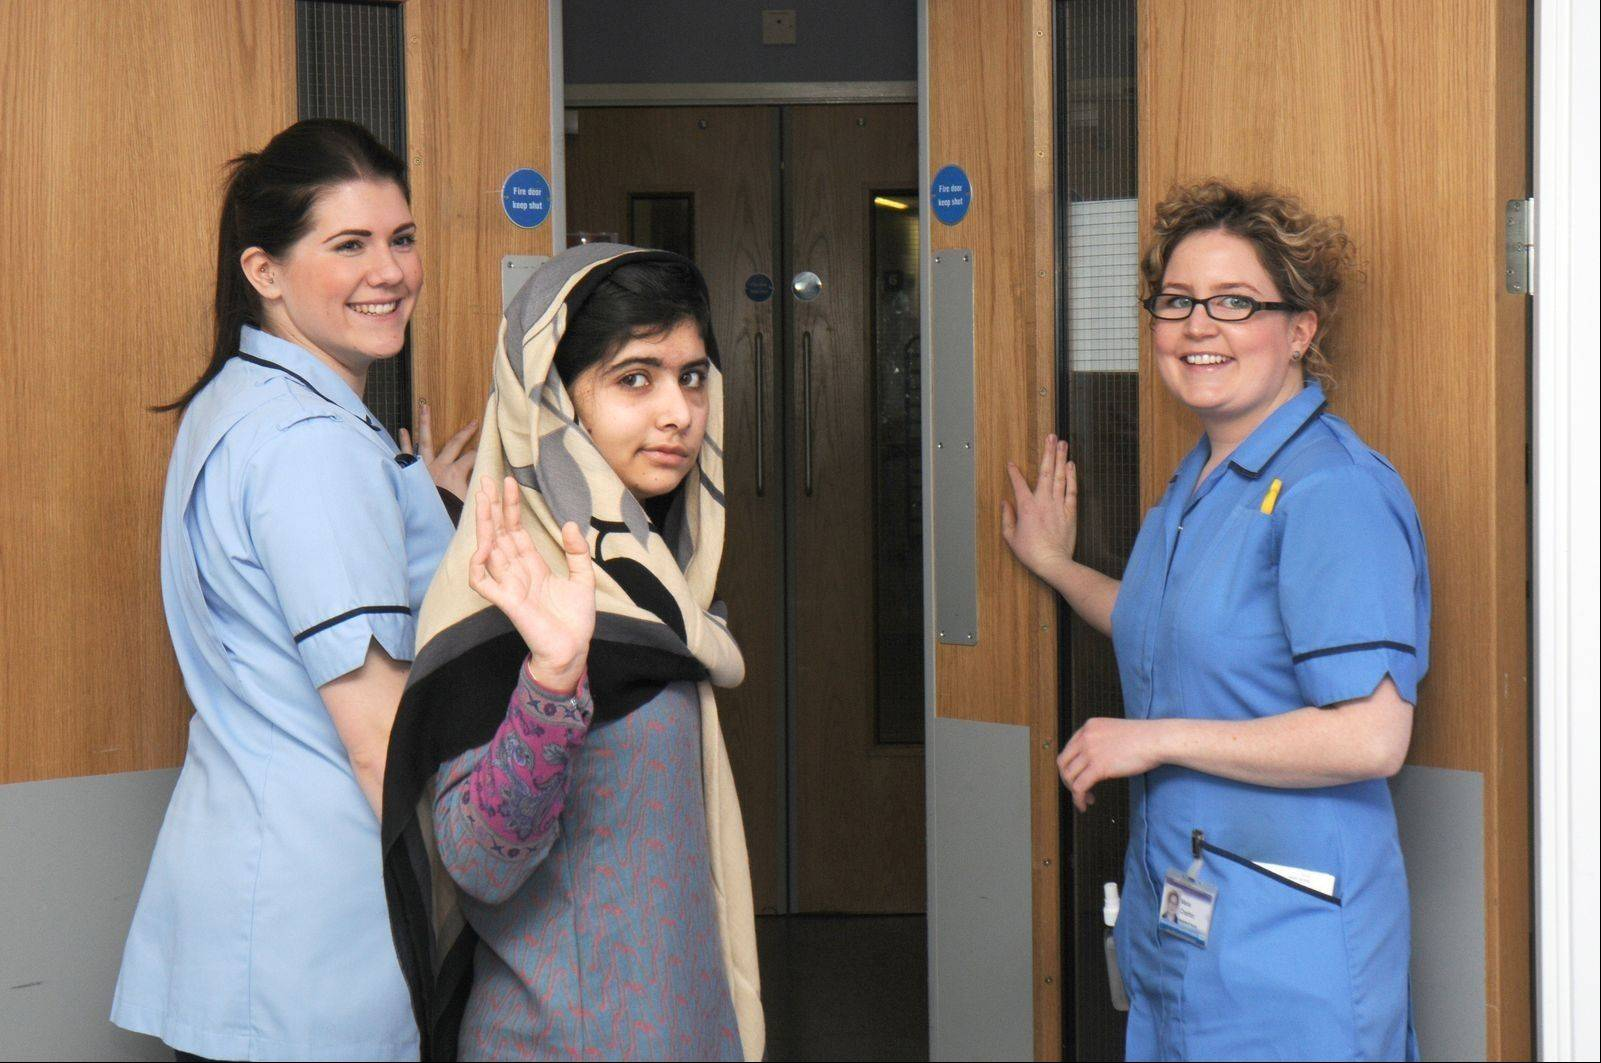 Malala Yousufzai says goodbye as she is discharged from the hospital to continue her rehabilitation at her family's temporary home in the area. the teenage Pakistani girl shot in the head by the Taliban for promoting girls' education has been released from the hospital after impressing doctors with her strength. Queen Elizabeth Hospital Birmingham officials said Friday 15-year-old Malala Yousufzai will be treated as an outpatient before being readmitted for further cranial reconstructive surgery at the end of the month or in early February.